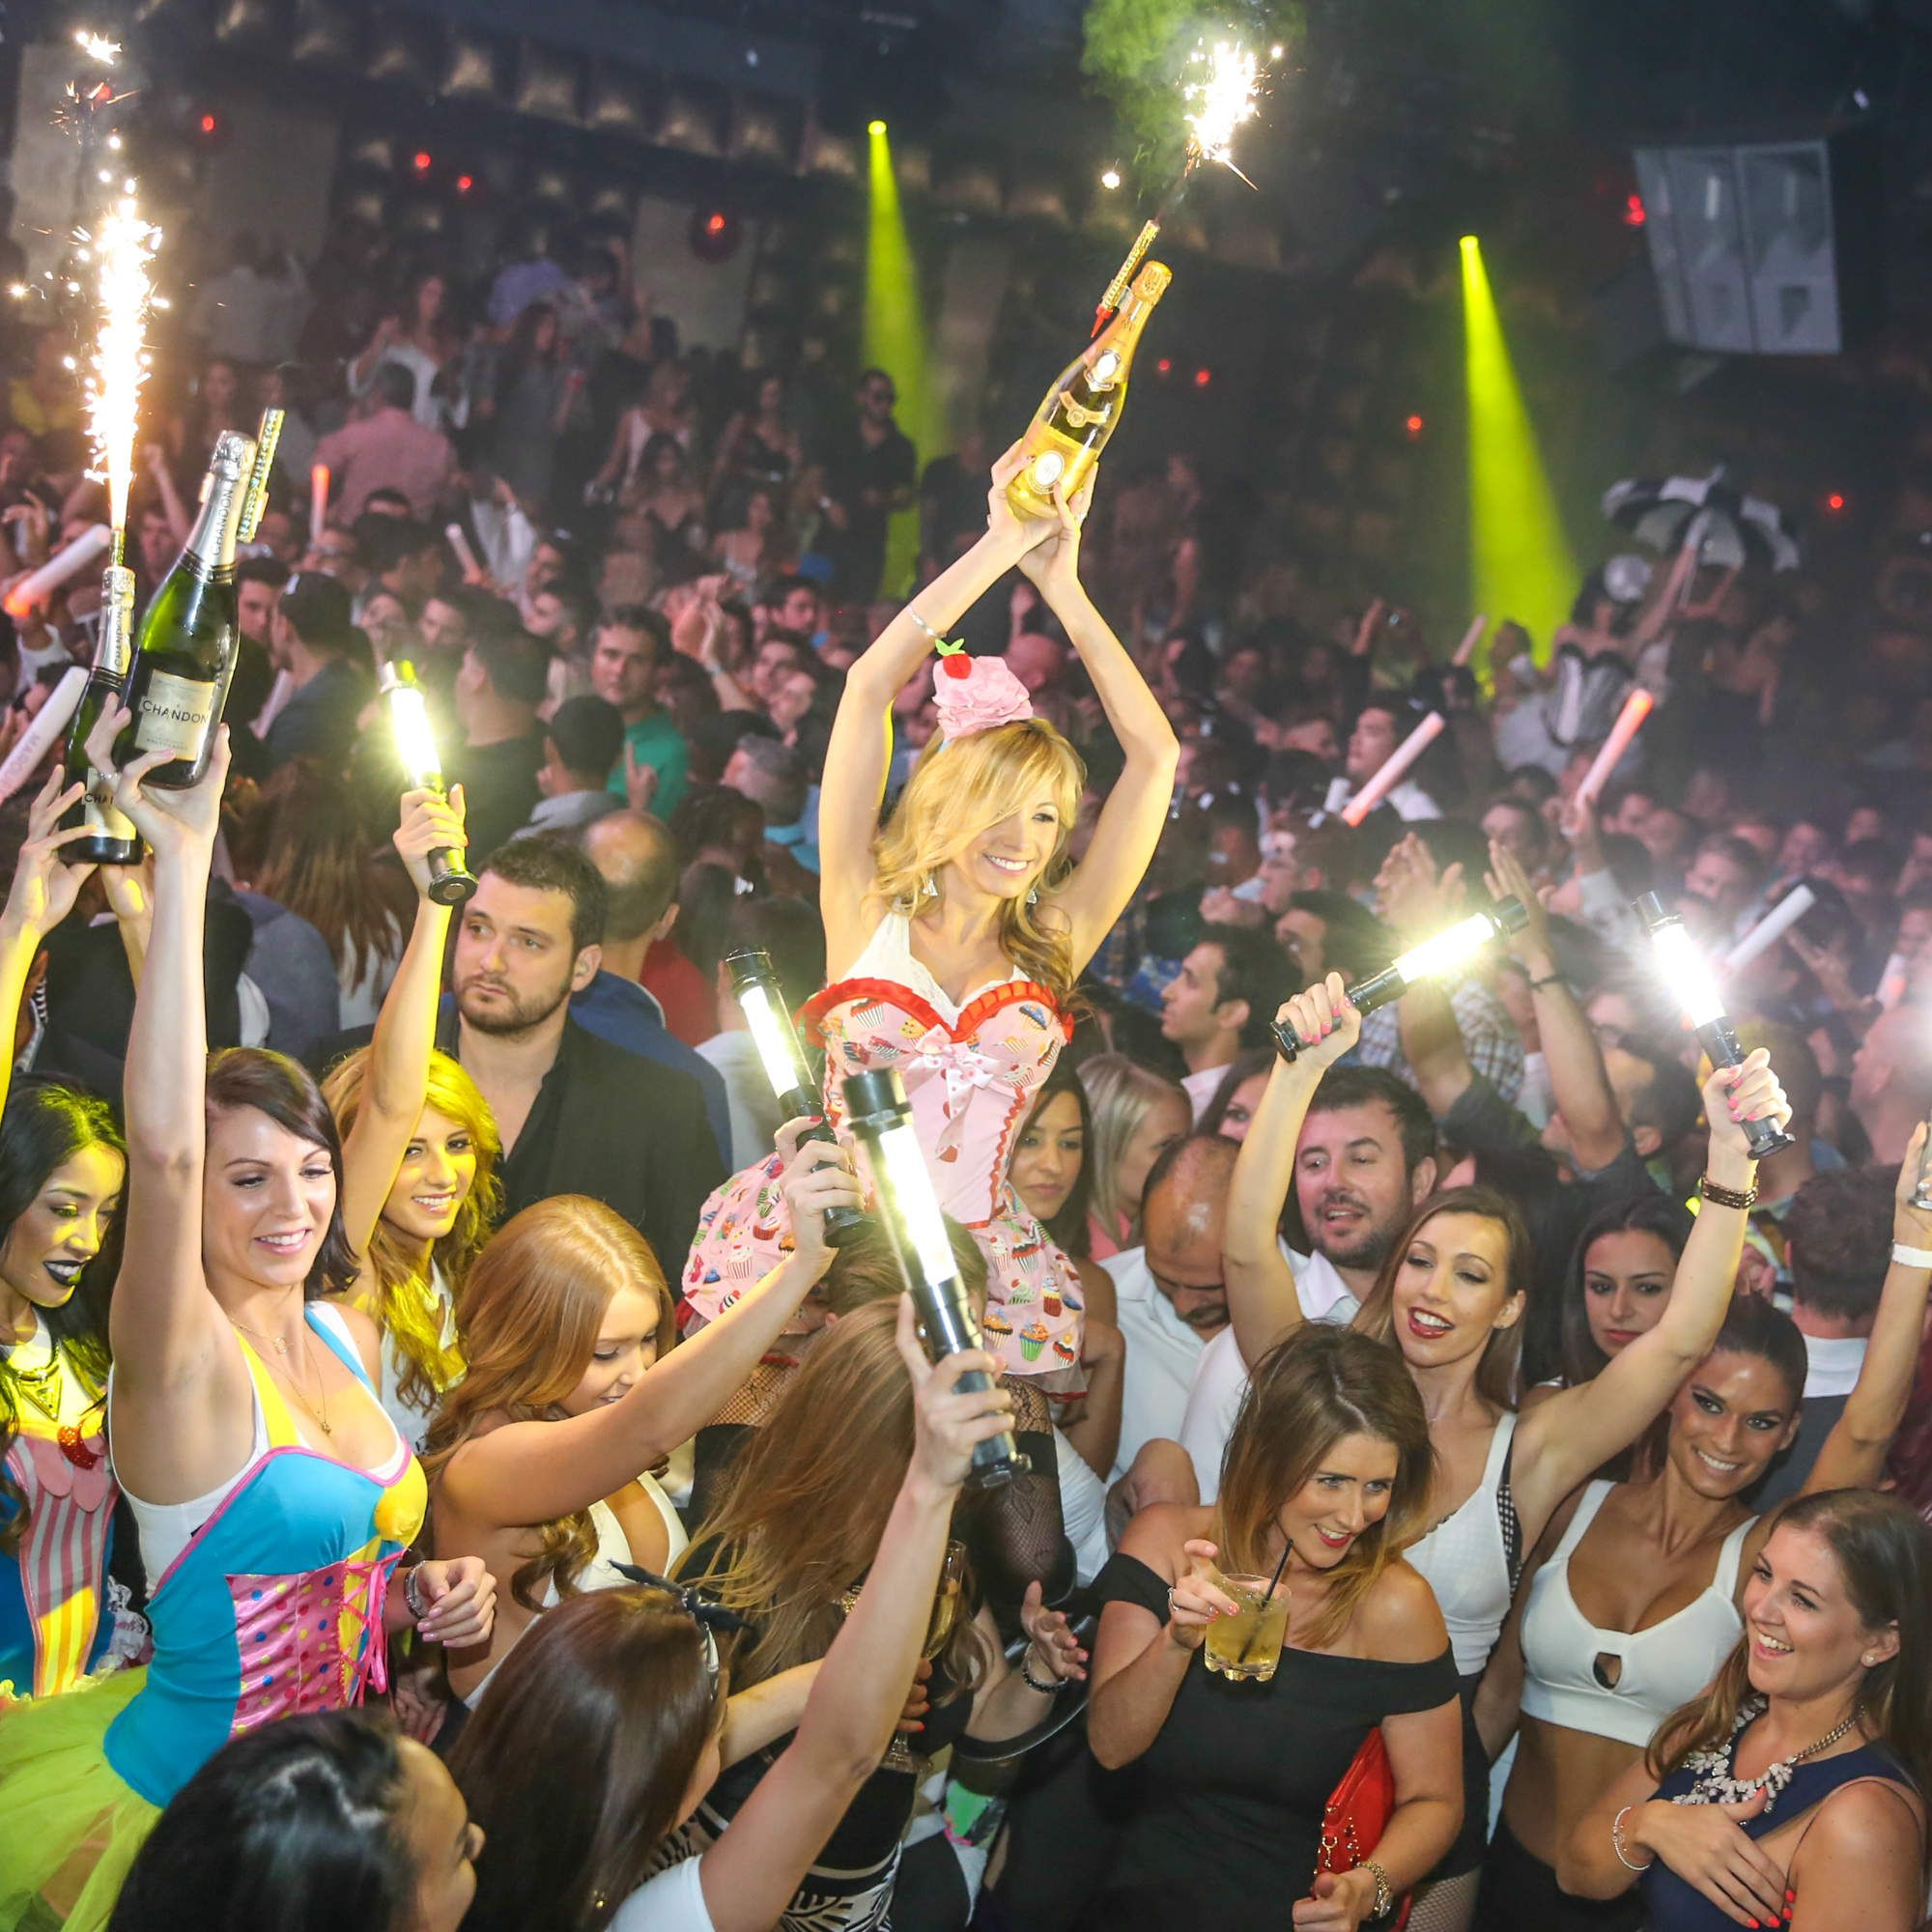 Top 10 Best Las Vegas Clubs | Las Vegas Direct